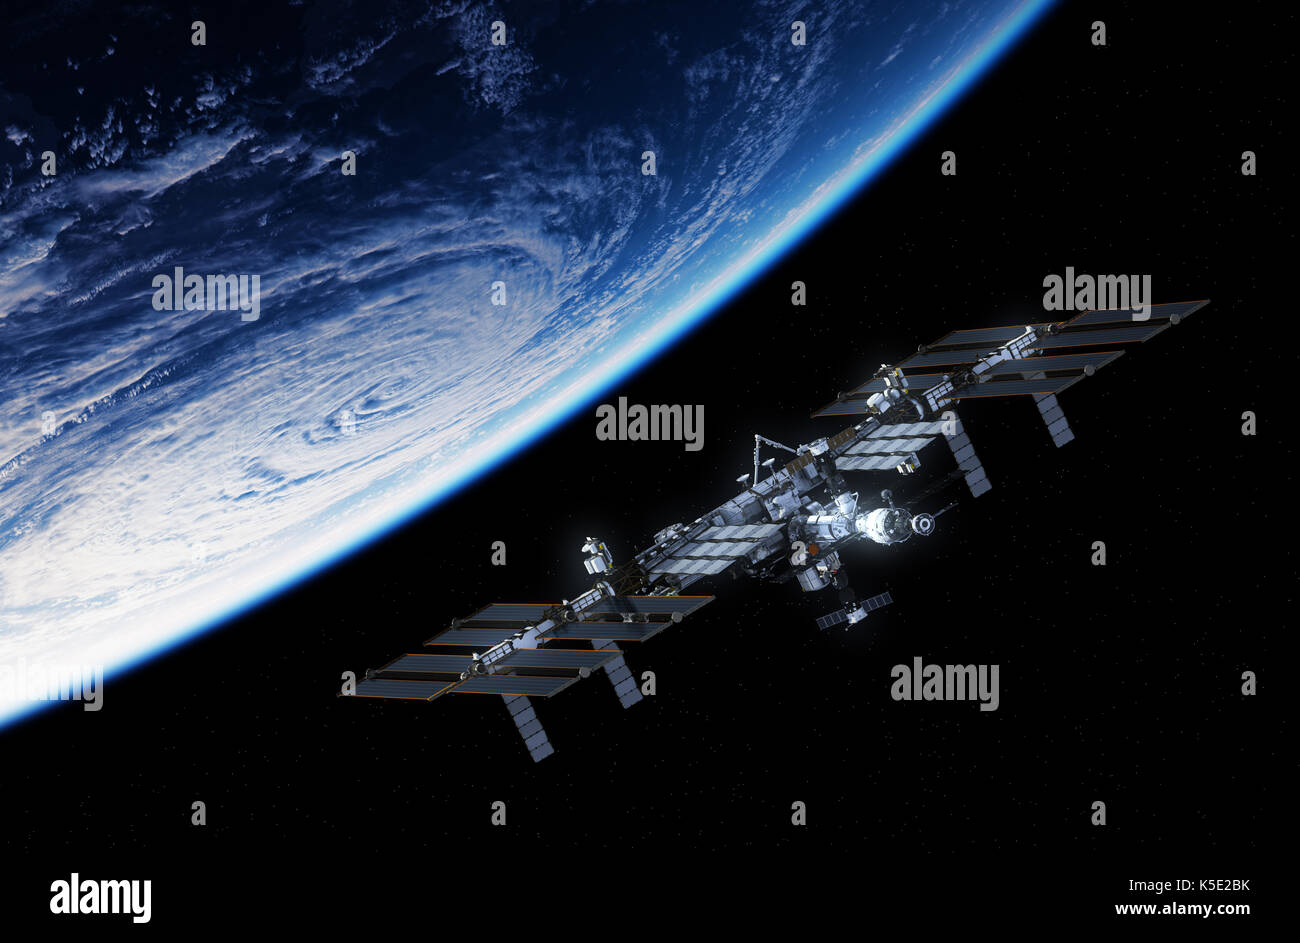 International Space Station Orbiting Planet Earth. 3D Illustration. - Stock Image